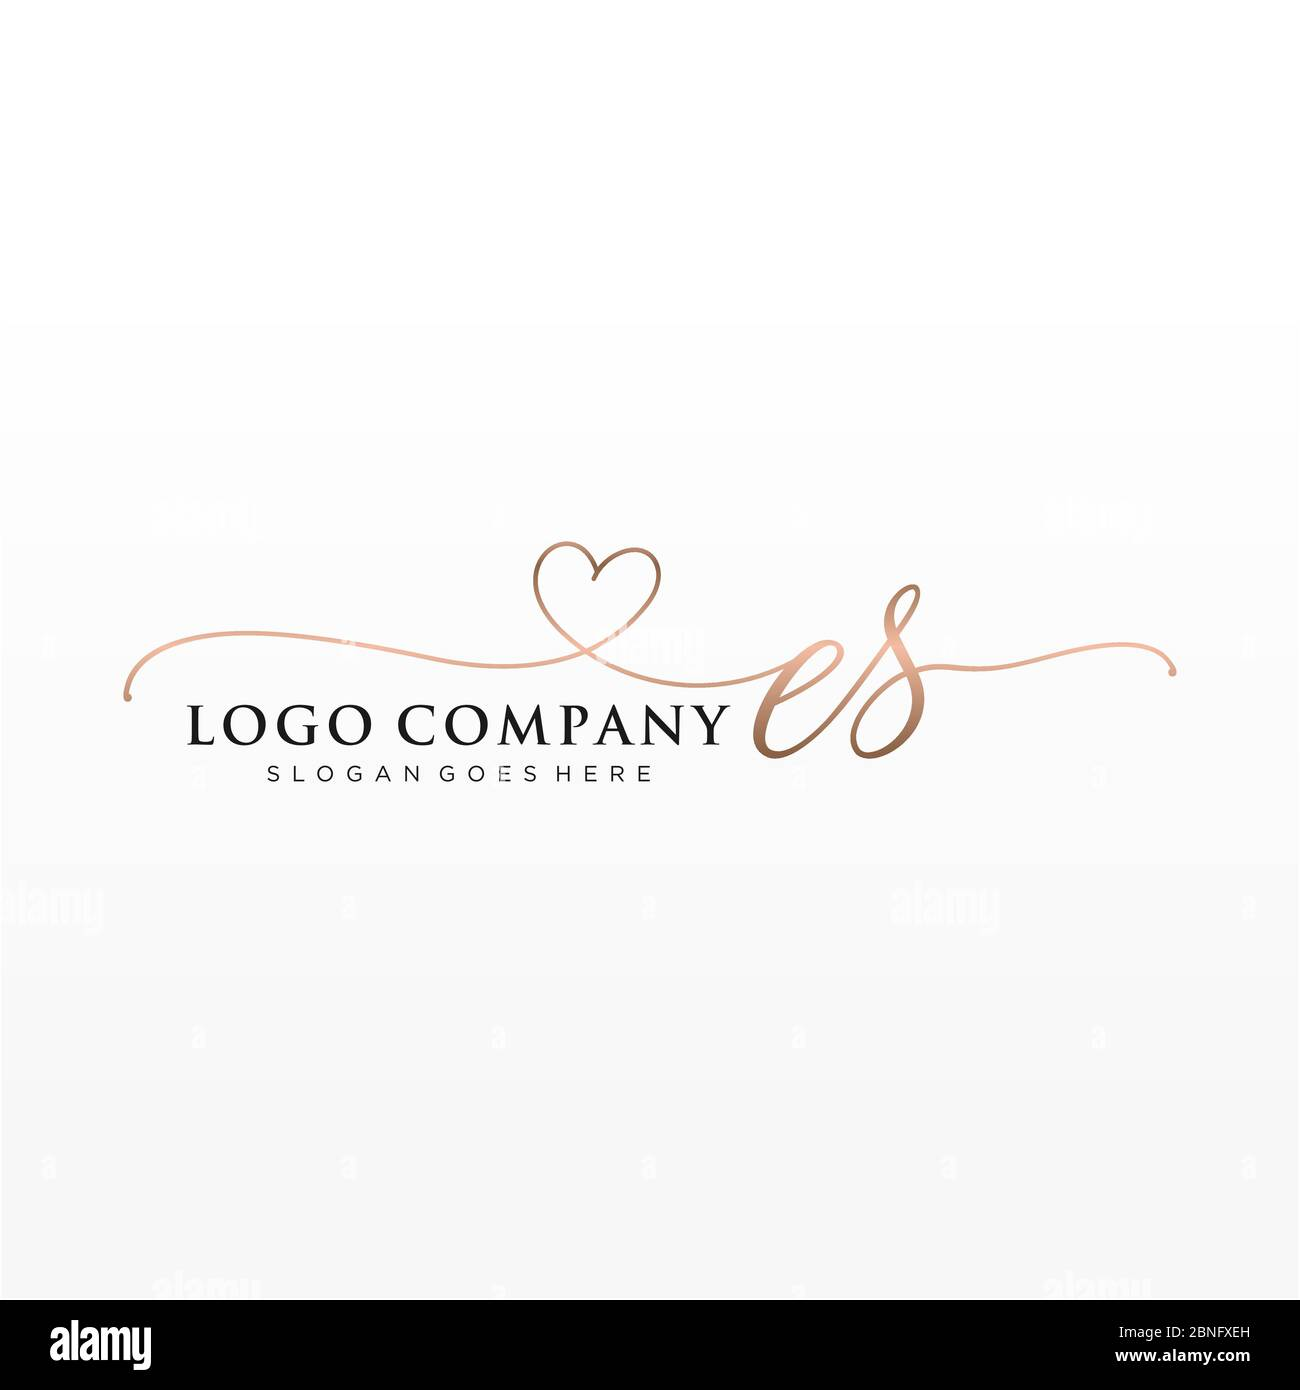 Initial Es Beauty Monogram And Elegant Logo Design Stock Vector Image Art Alamy